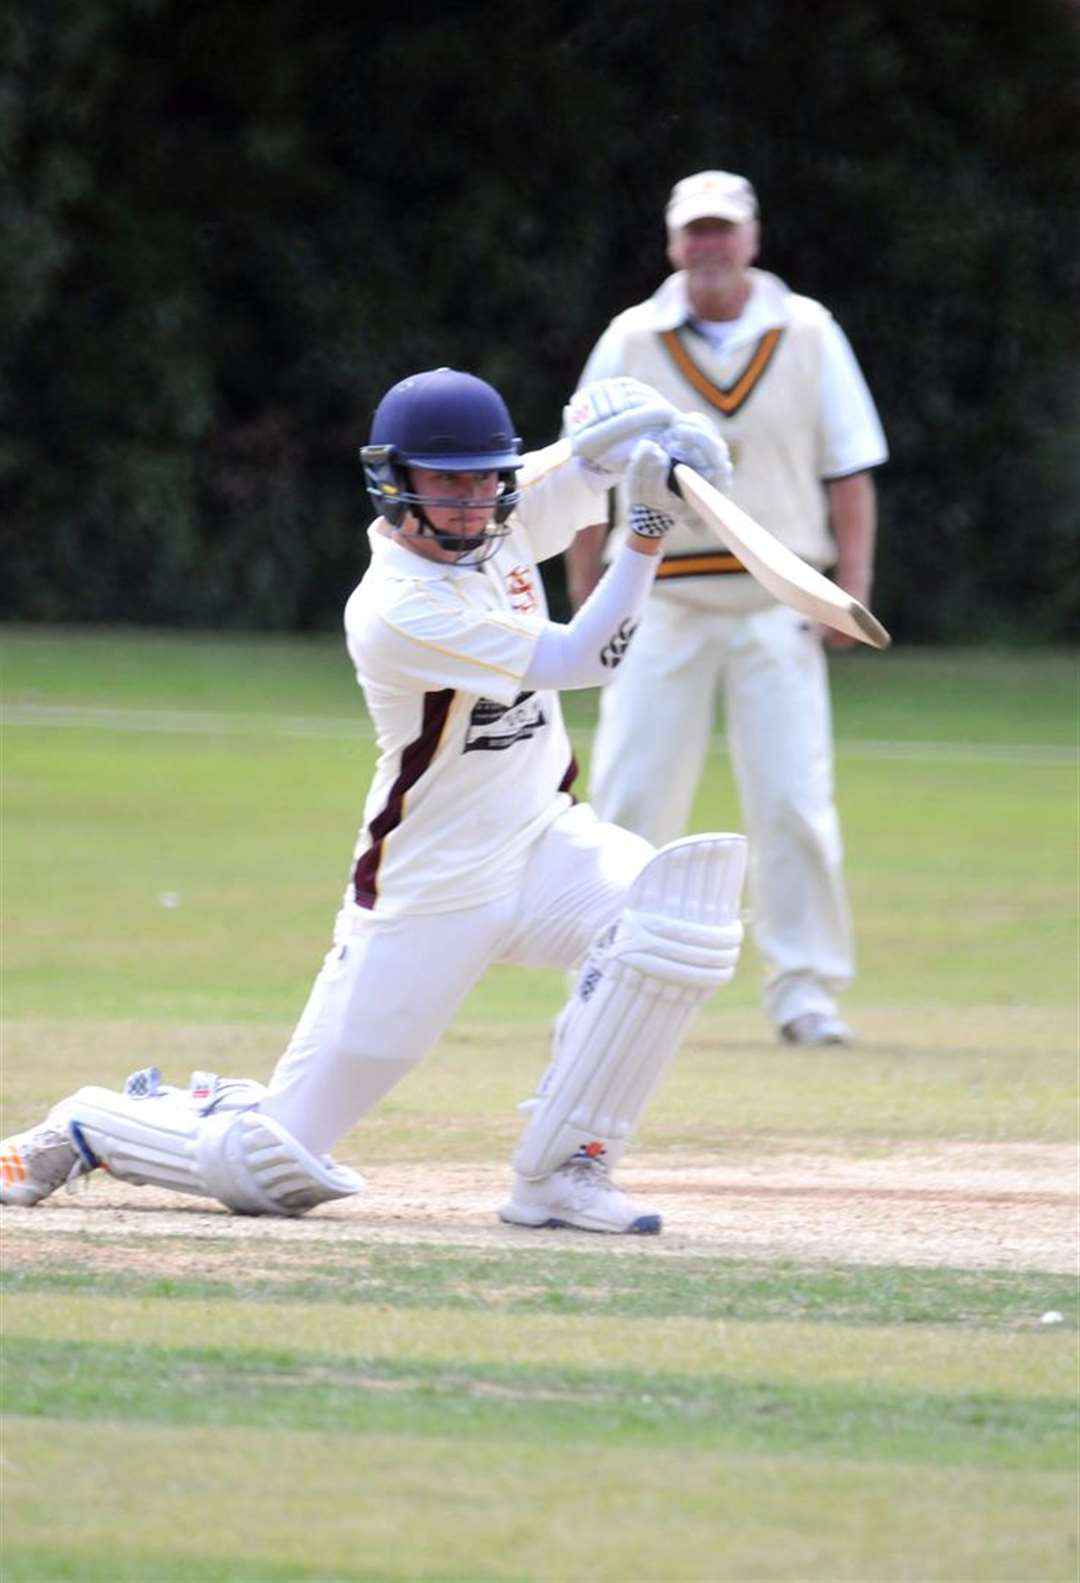 Long Sutton Cricket Club - action v StamfordWil Naylor (2686615)